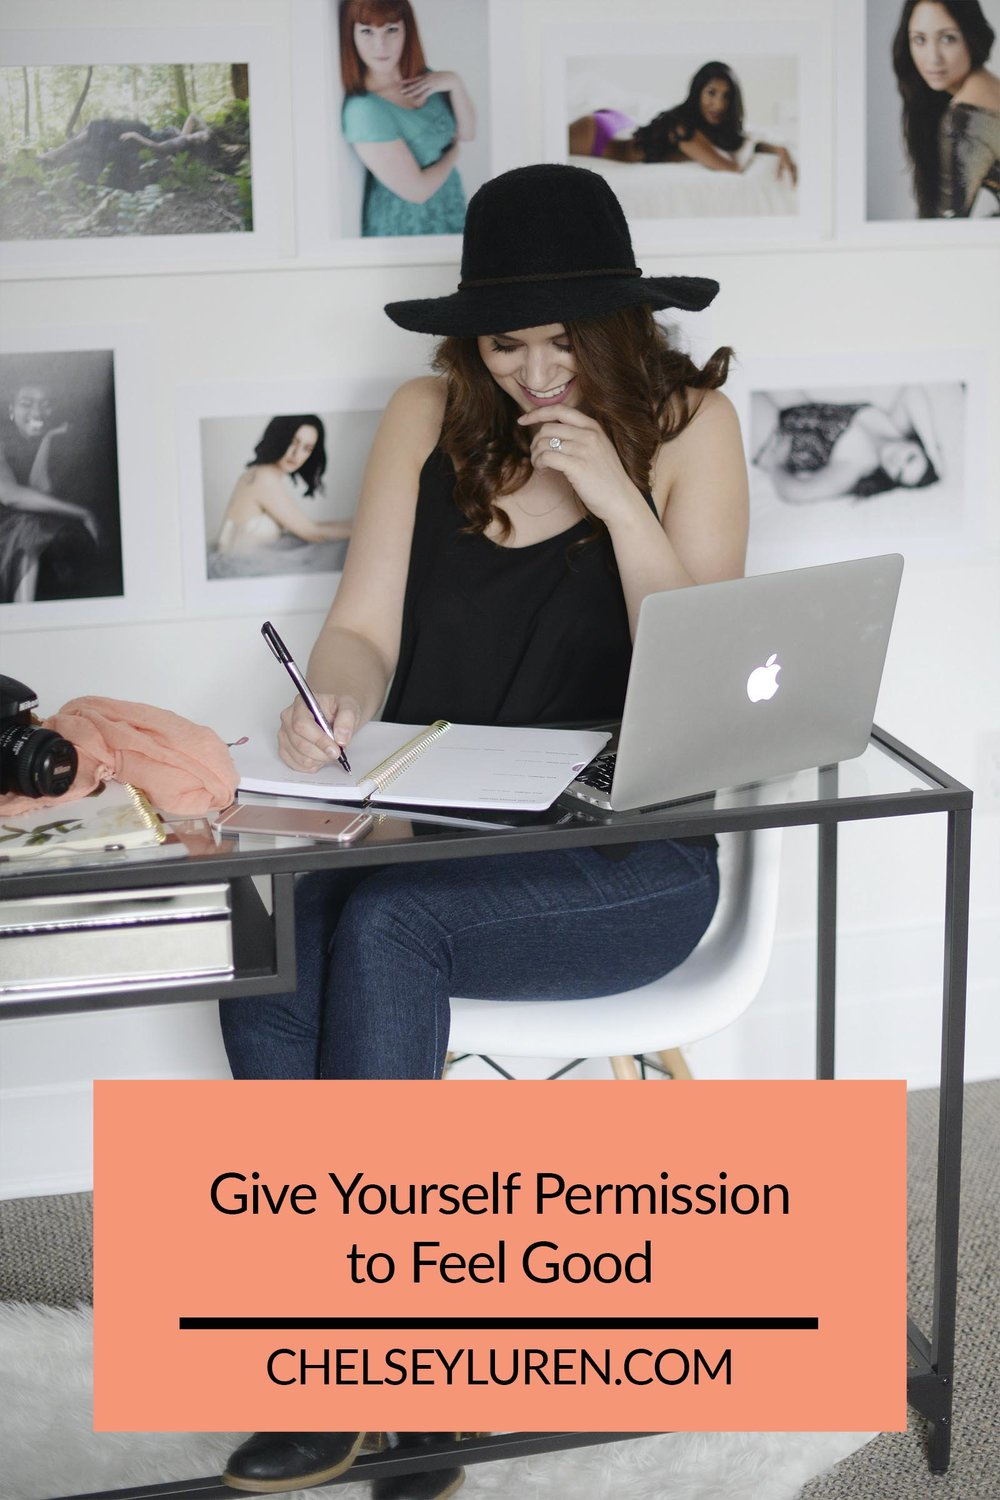 Chelsey Luren Portraits - Give Yourself Permission to Feel Good.jpg